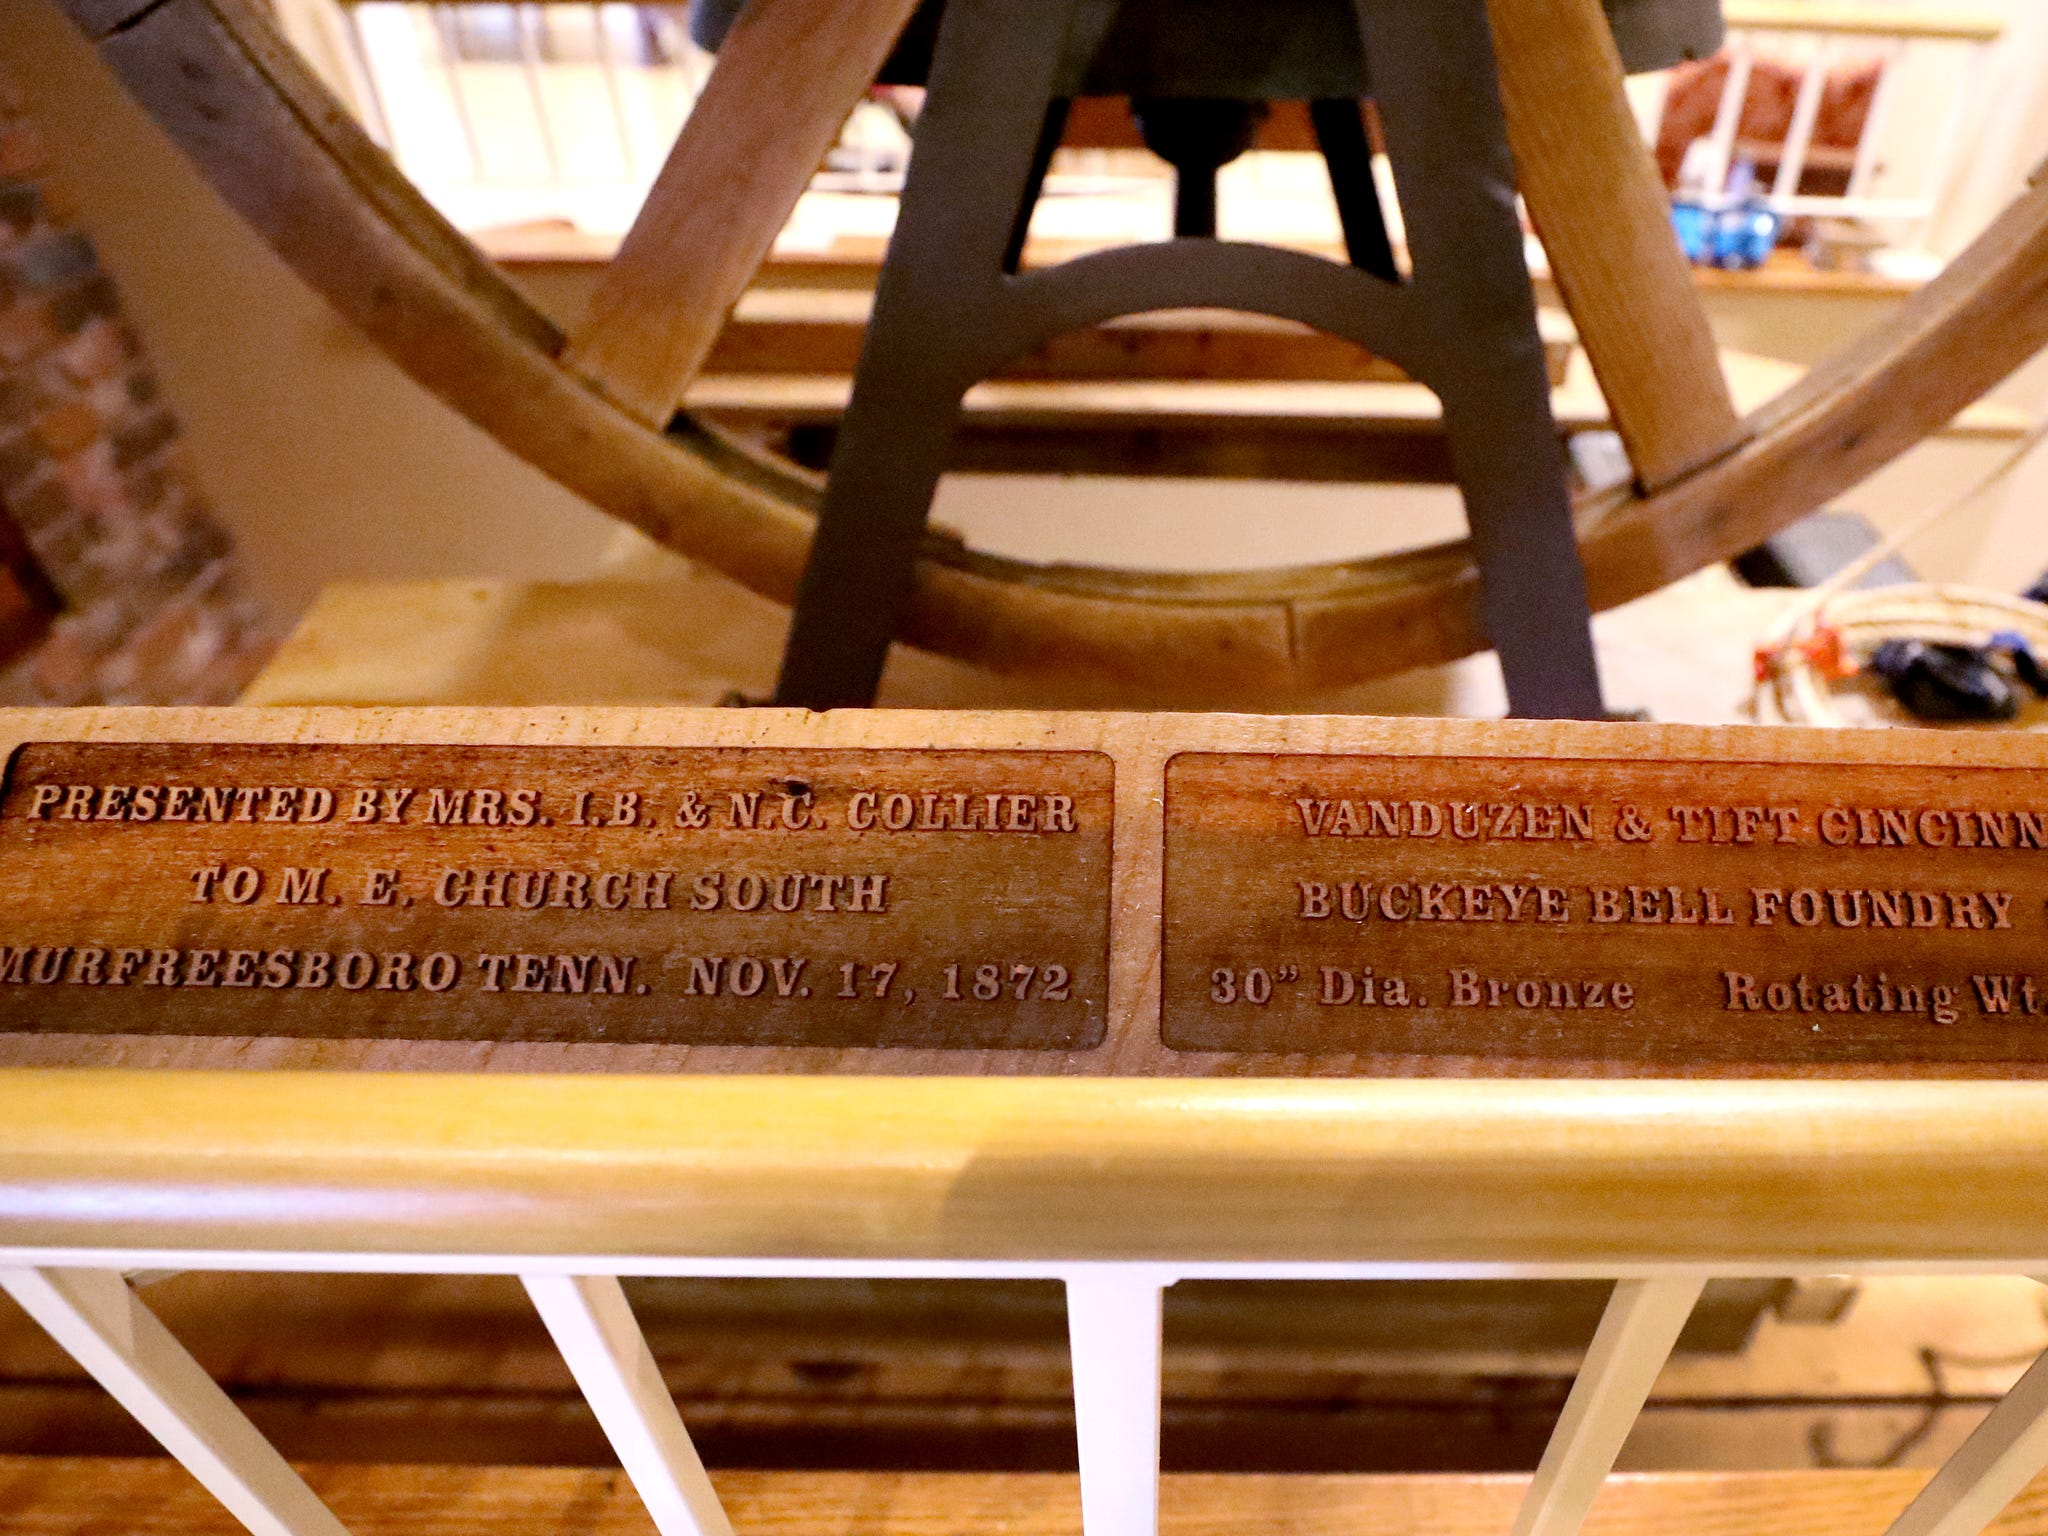 Wooden plaques that have information about the history of the old First Methodist Church bell are installed next to the new site of the First Methodist Church with the bell, on Tuesday April 2, 2019.